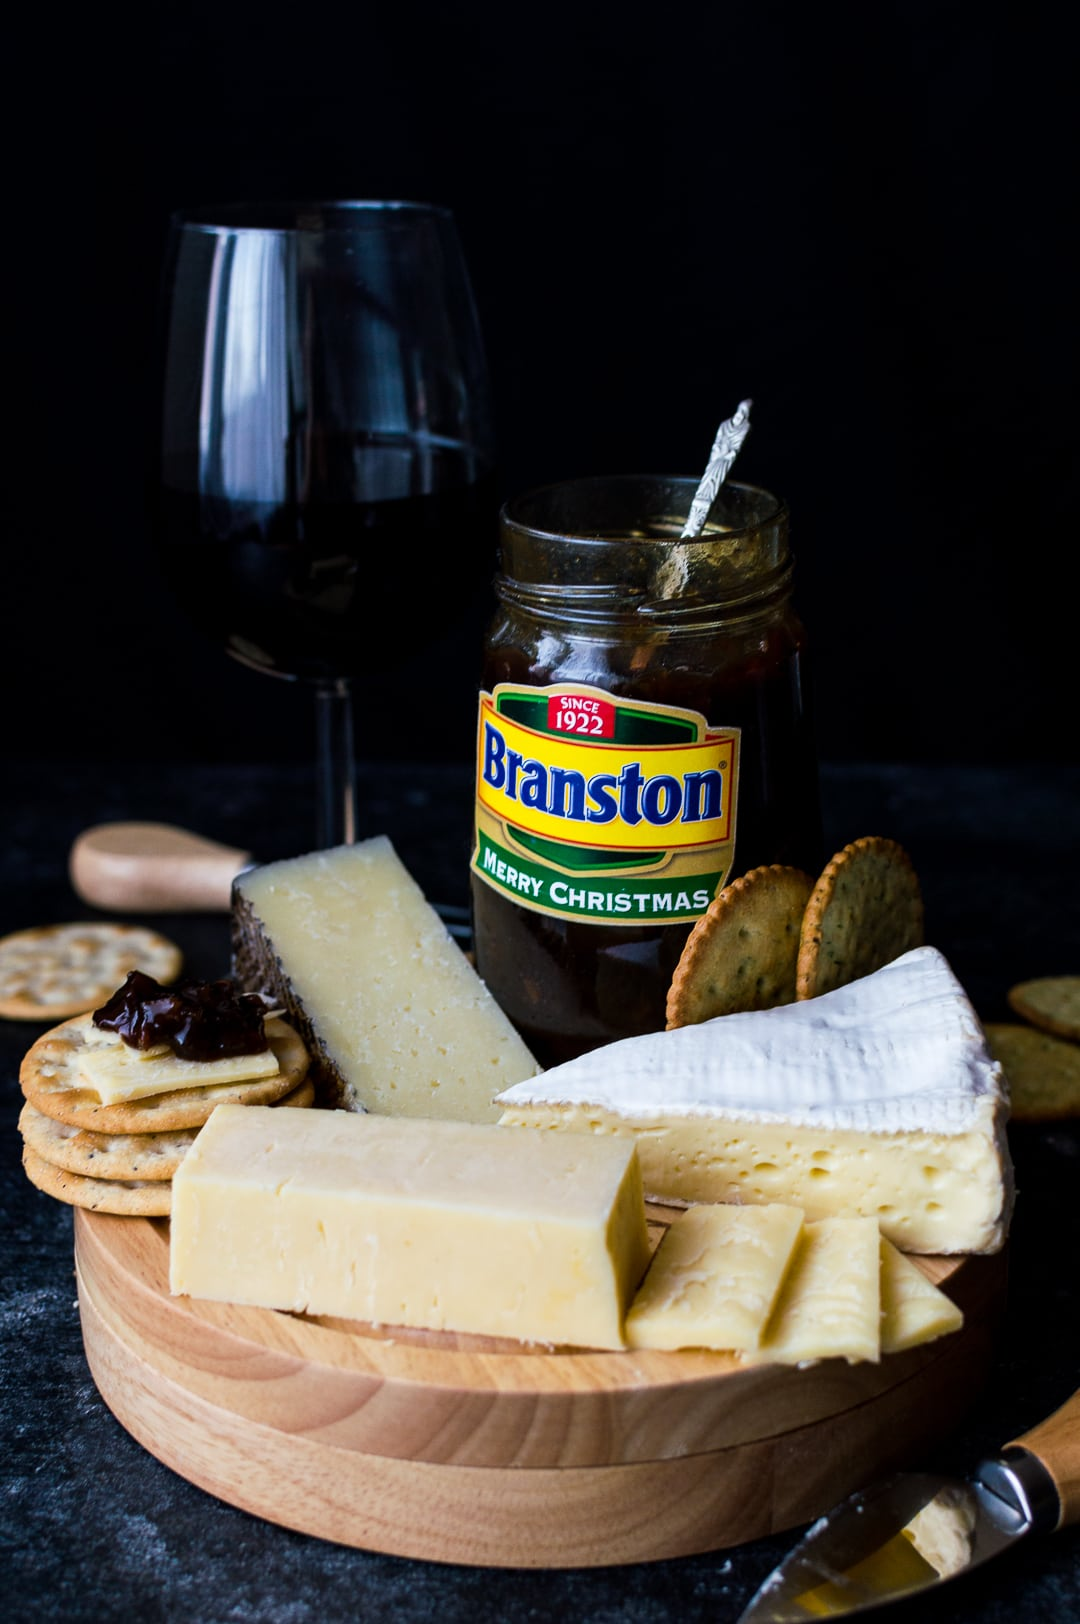 Branston pickle, cheese and wine